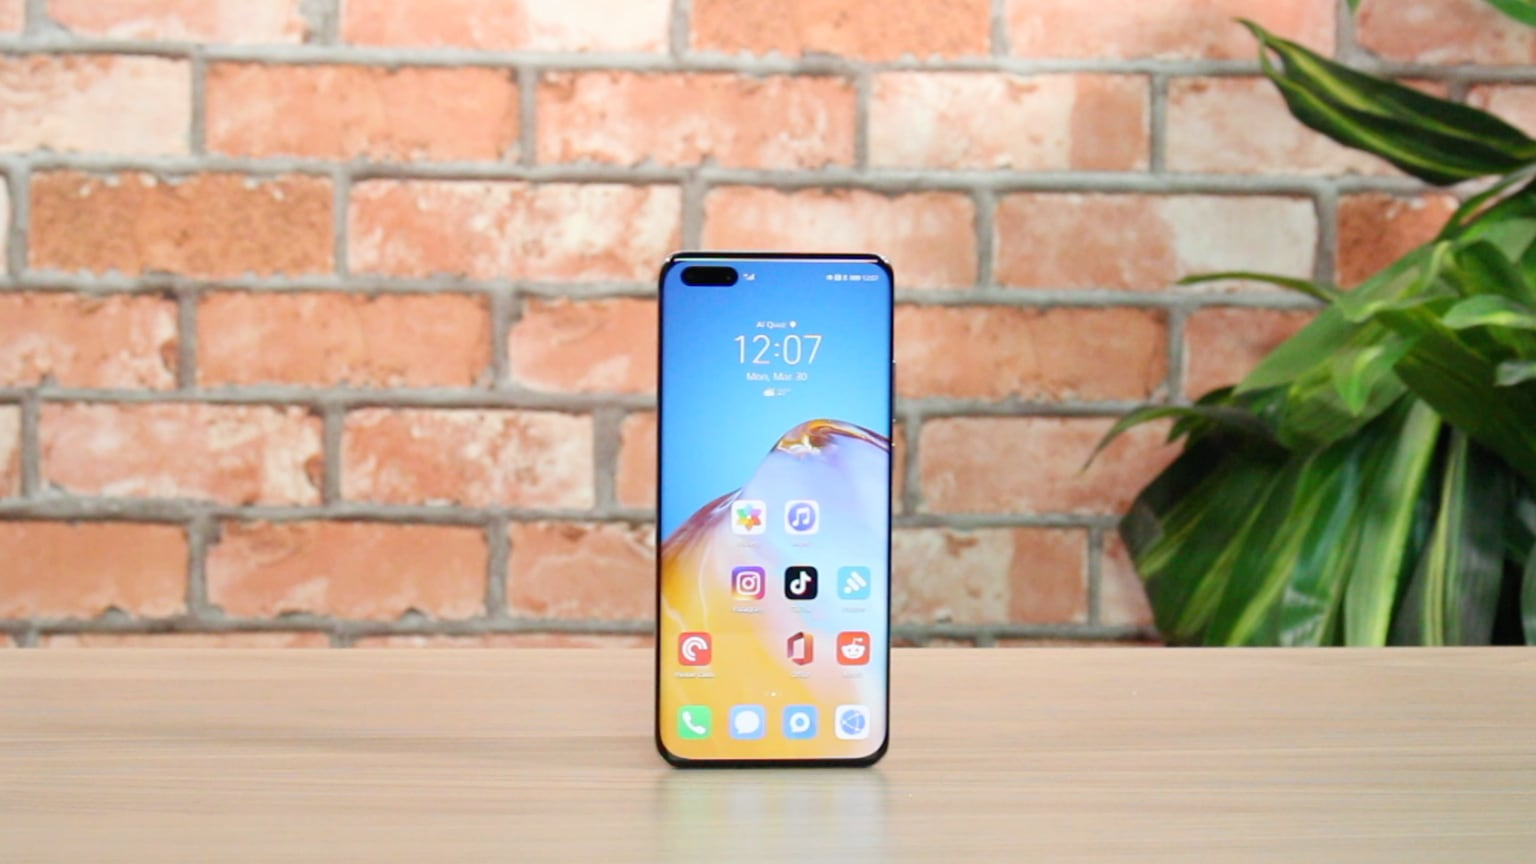 The Huawei P40 Pro is the king of performance with a stunning camera setup